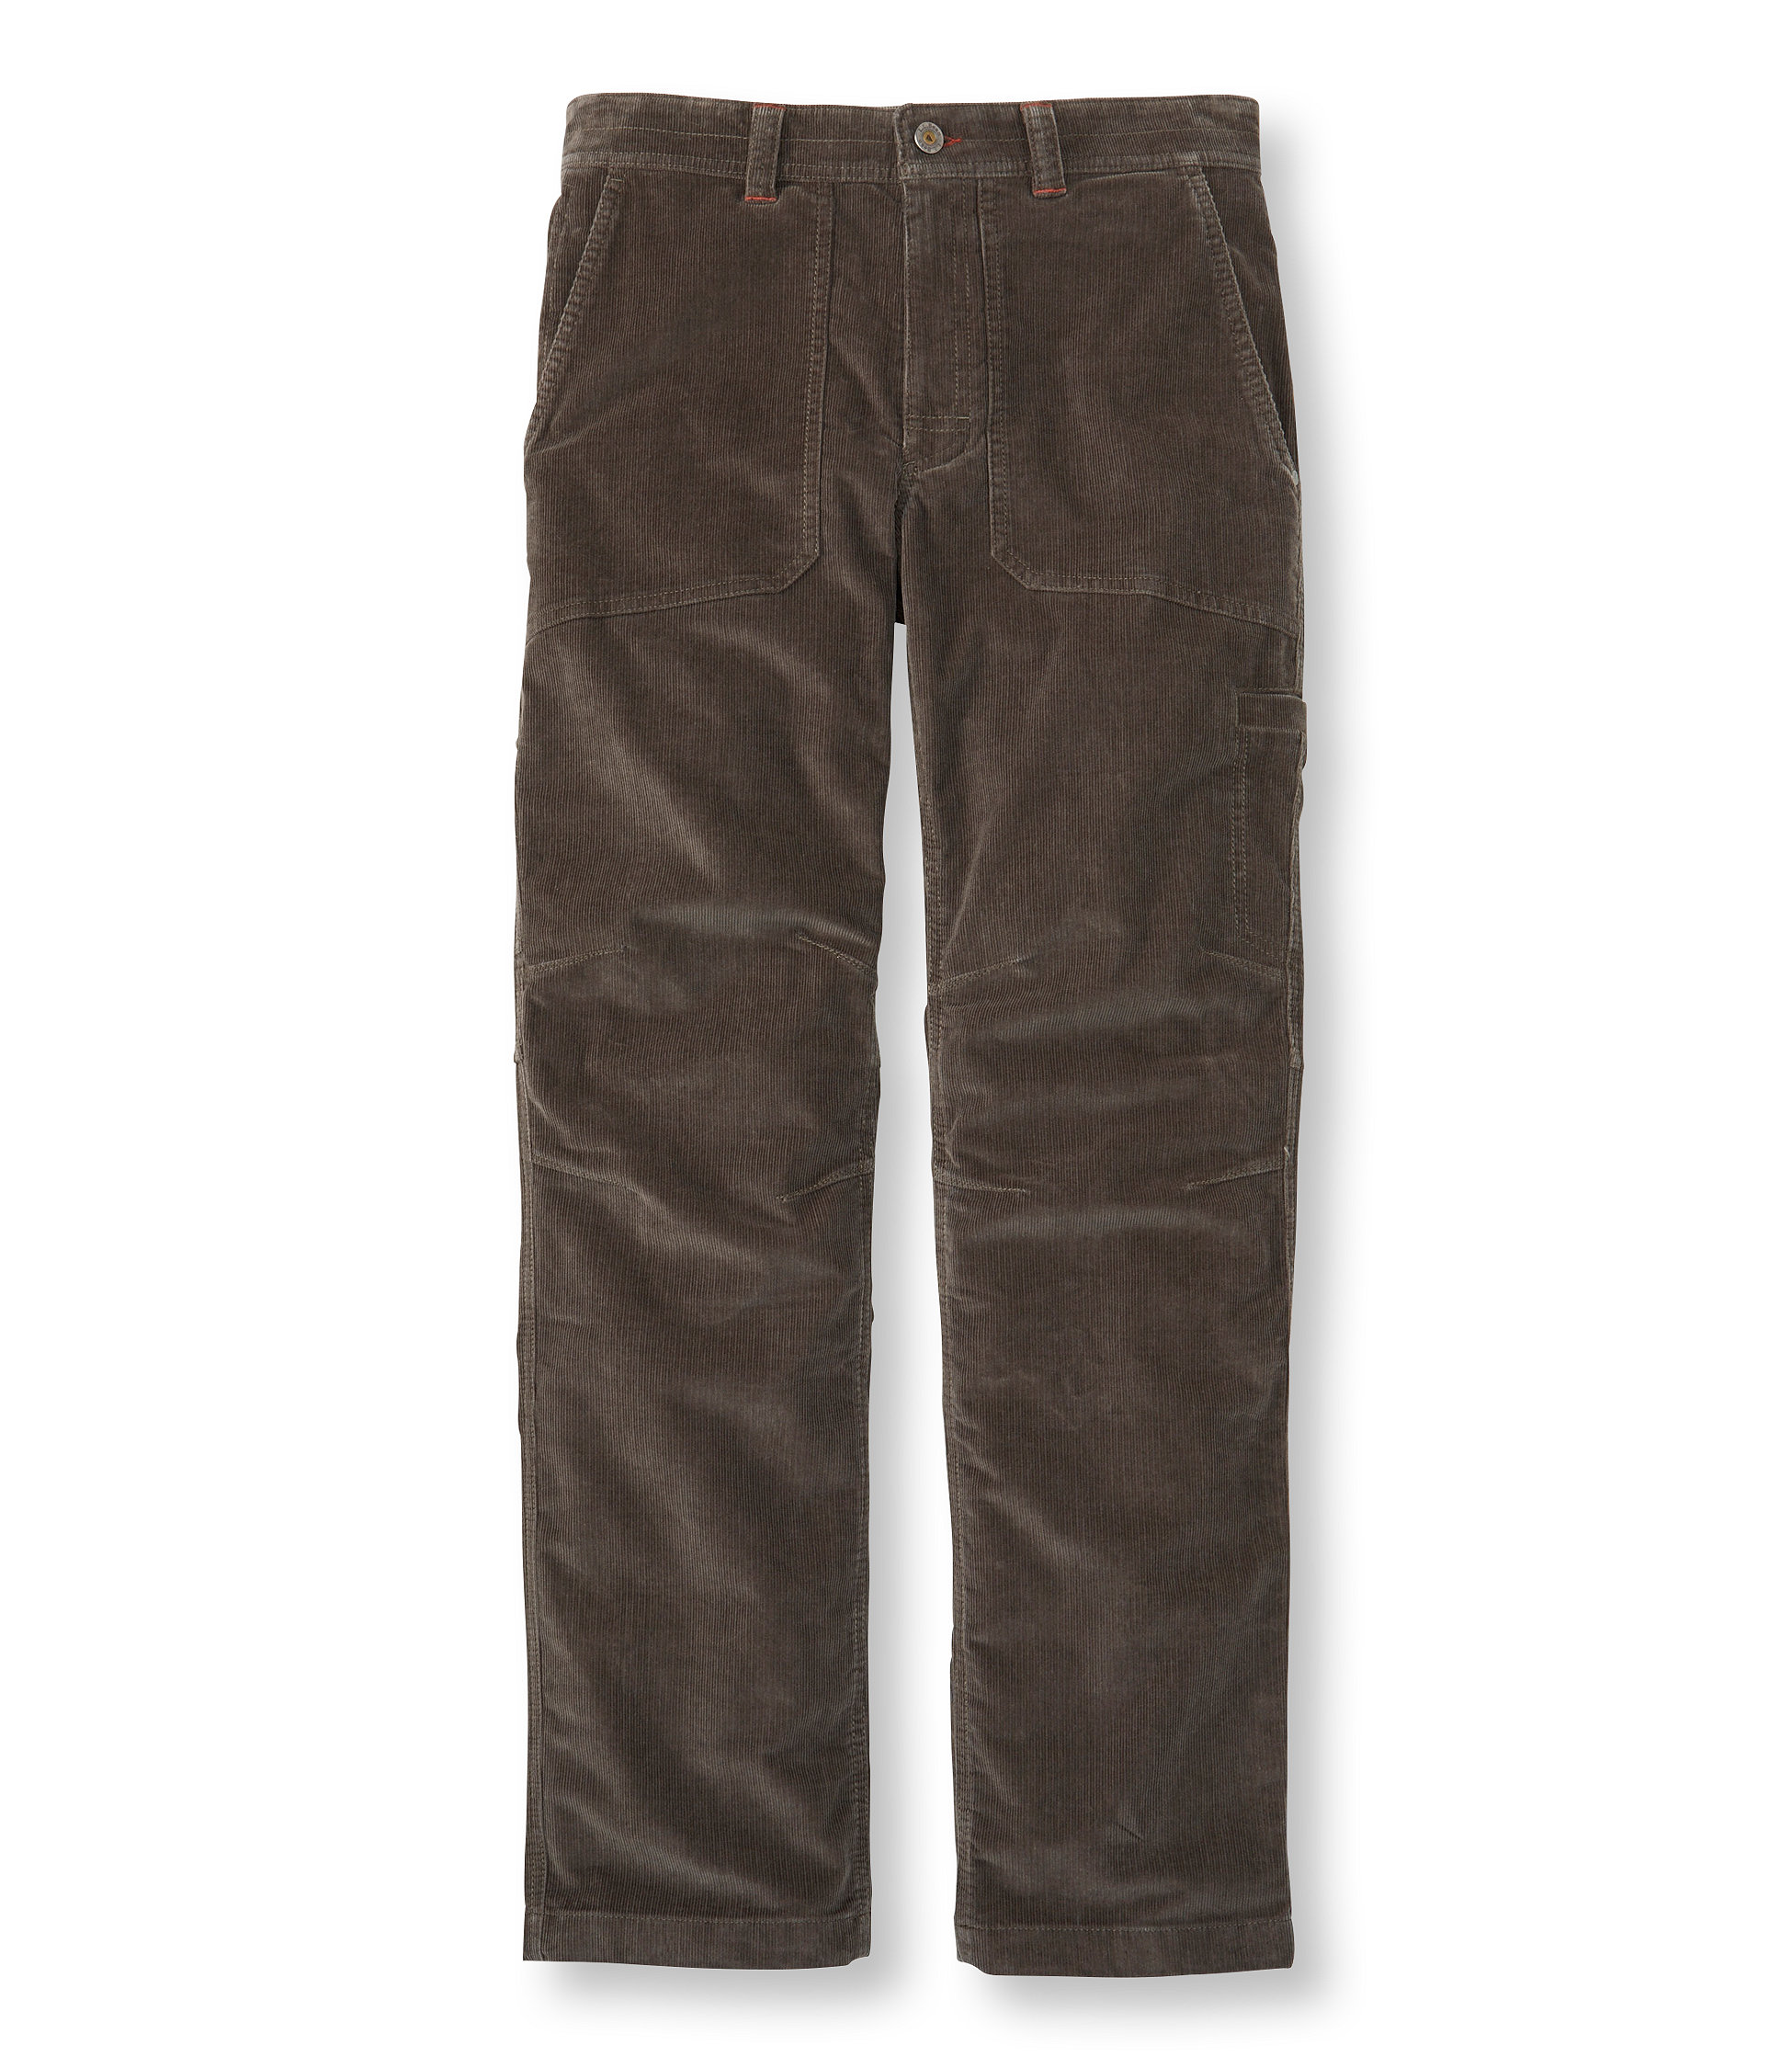 L.L.Bean North Ridge Corduroy Pants